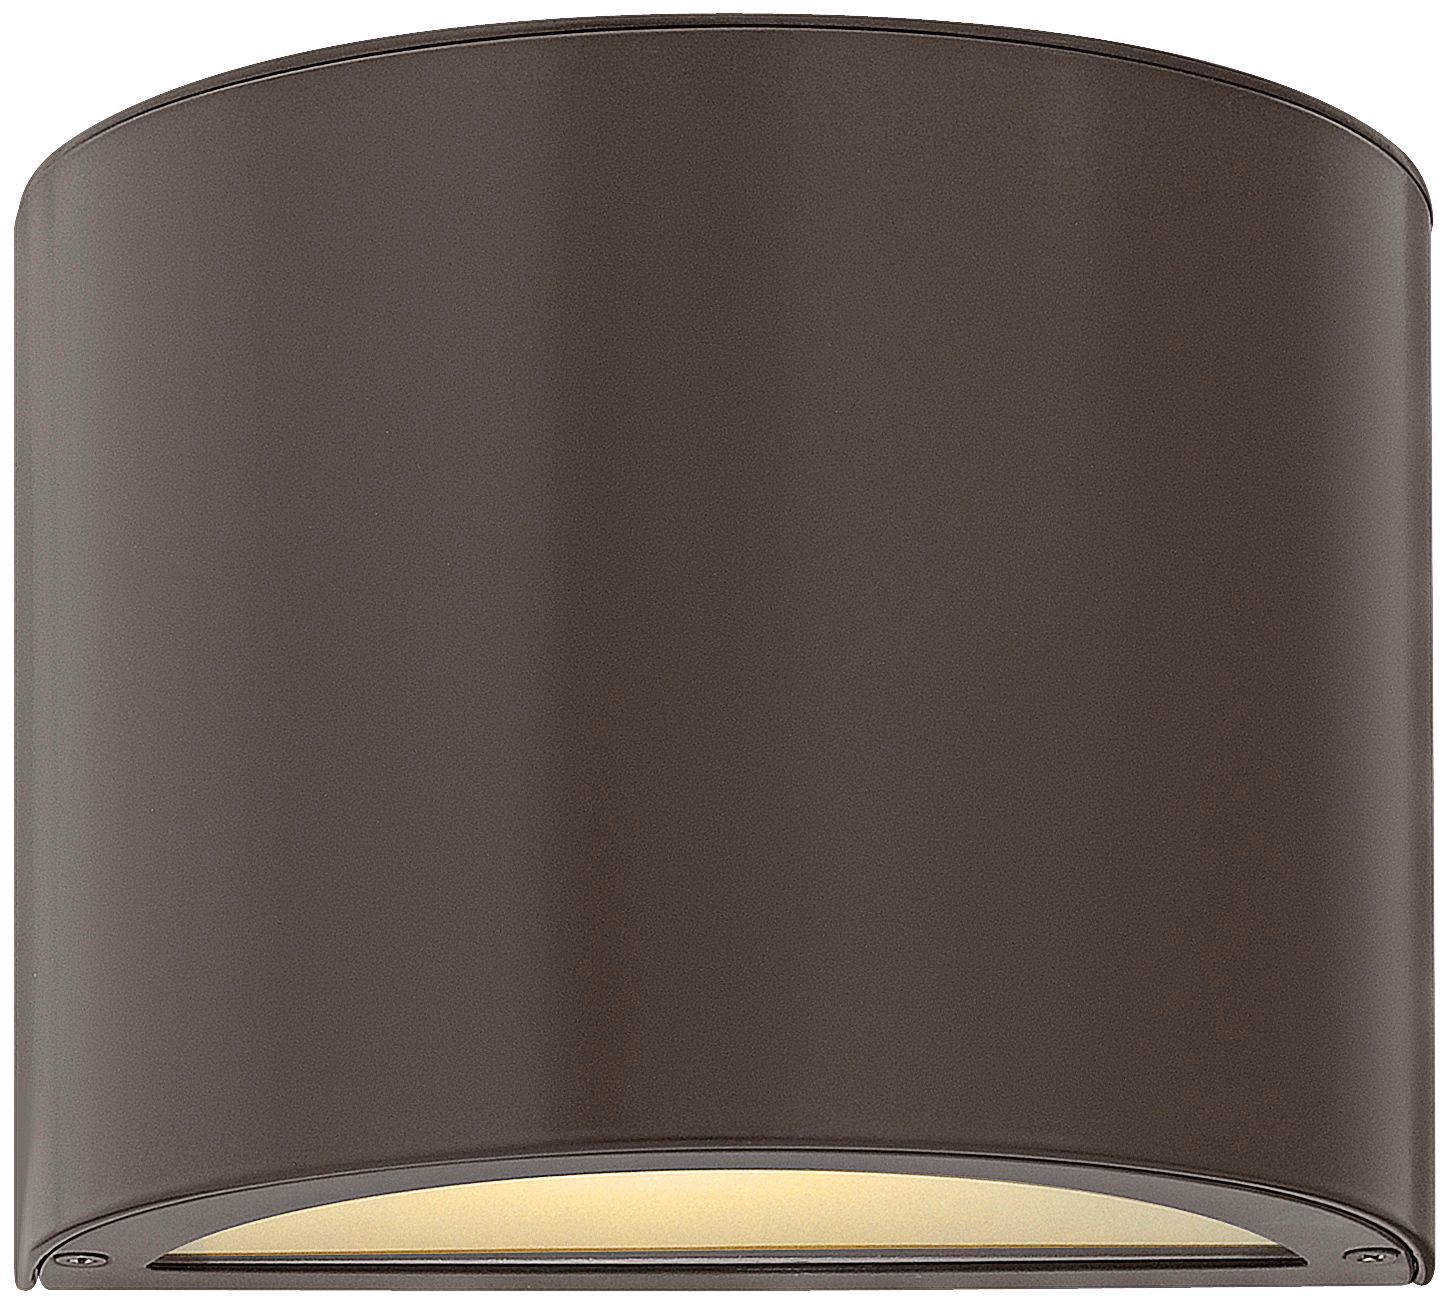 Hinkley Luna Bronze with Glass Up-Down Outdoor Wall Light - #EUV1676 - Euro Style Lighting